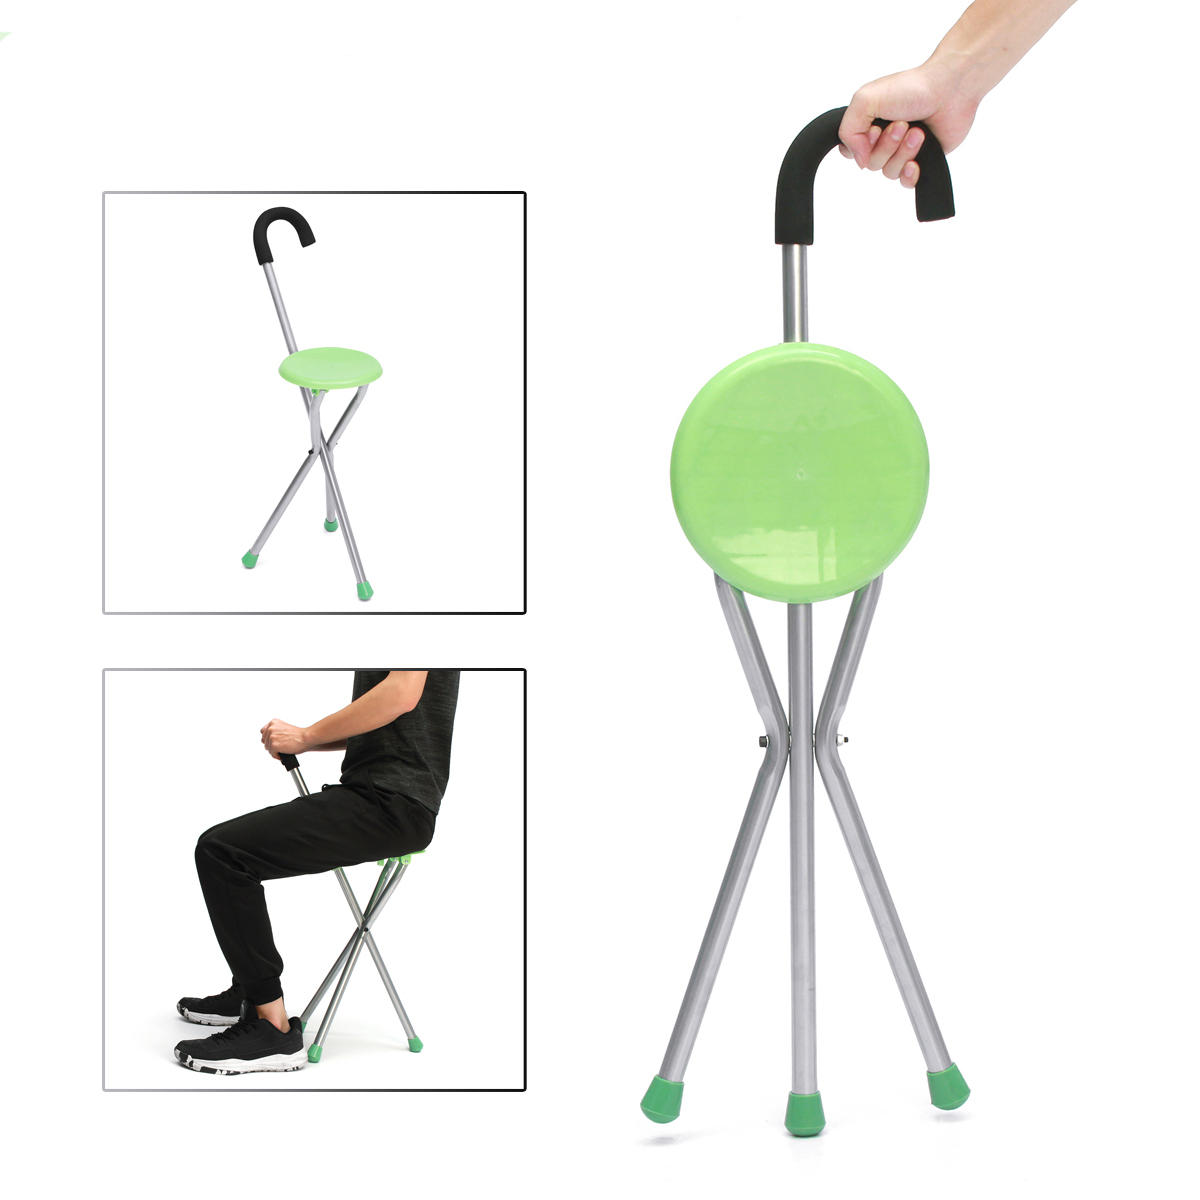 Portable Stool Camping Folding Tripod Cane Walking Stick Seat Portable Stool Chair Max Load Bearing 130kg